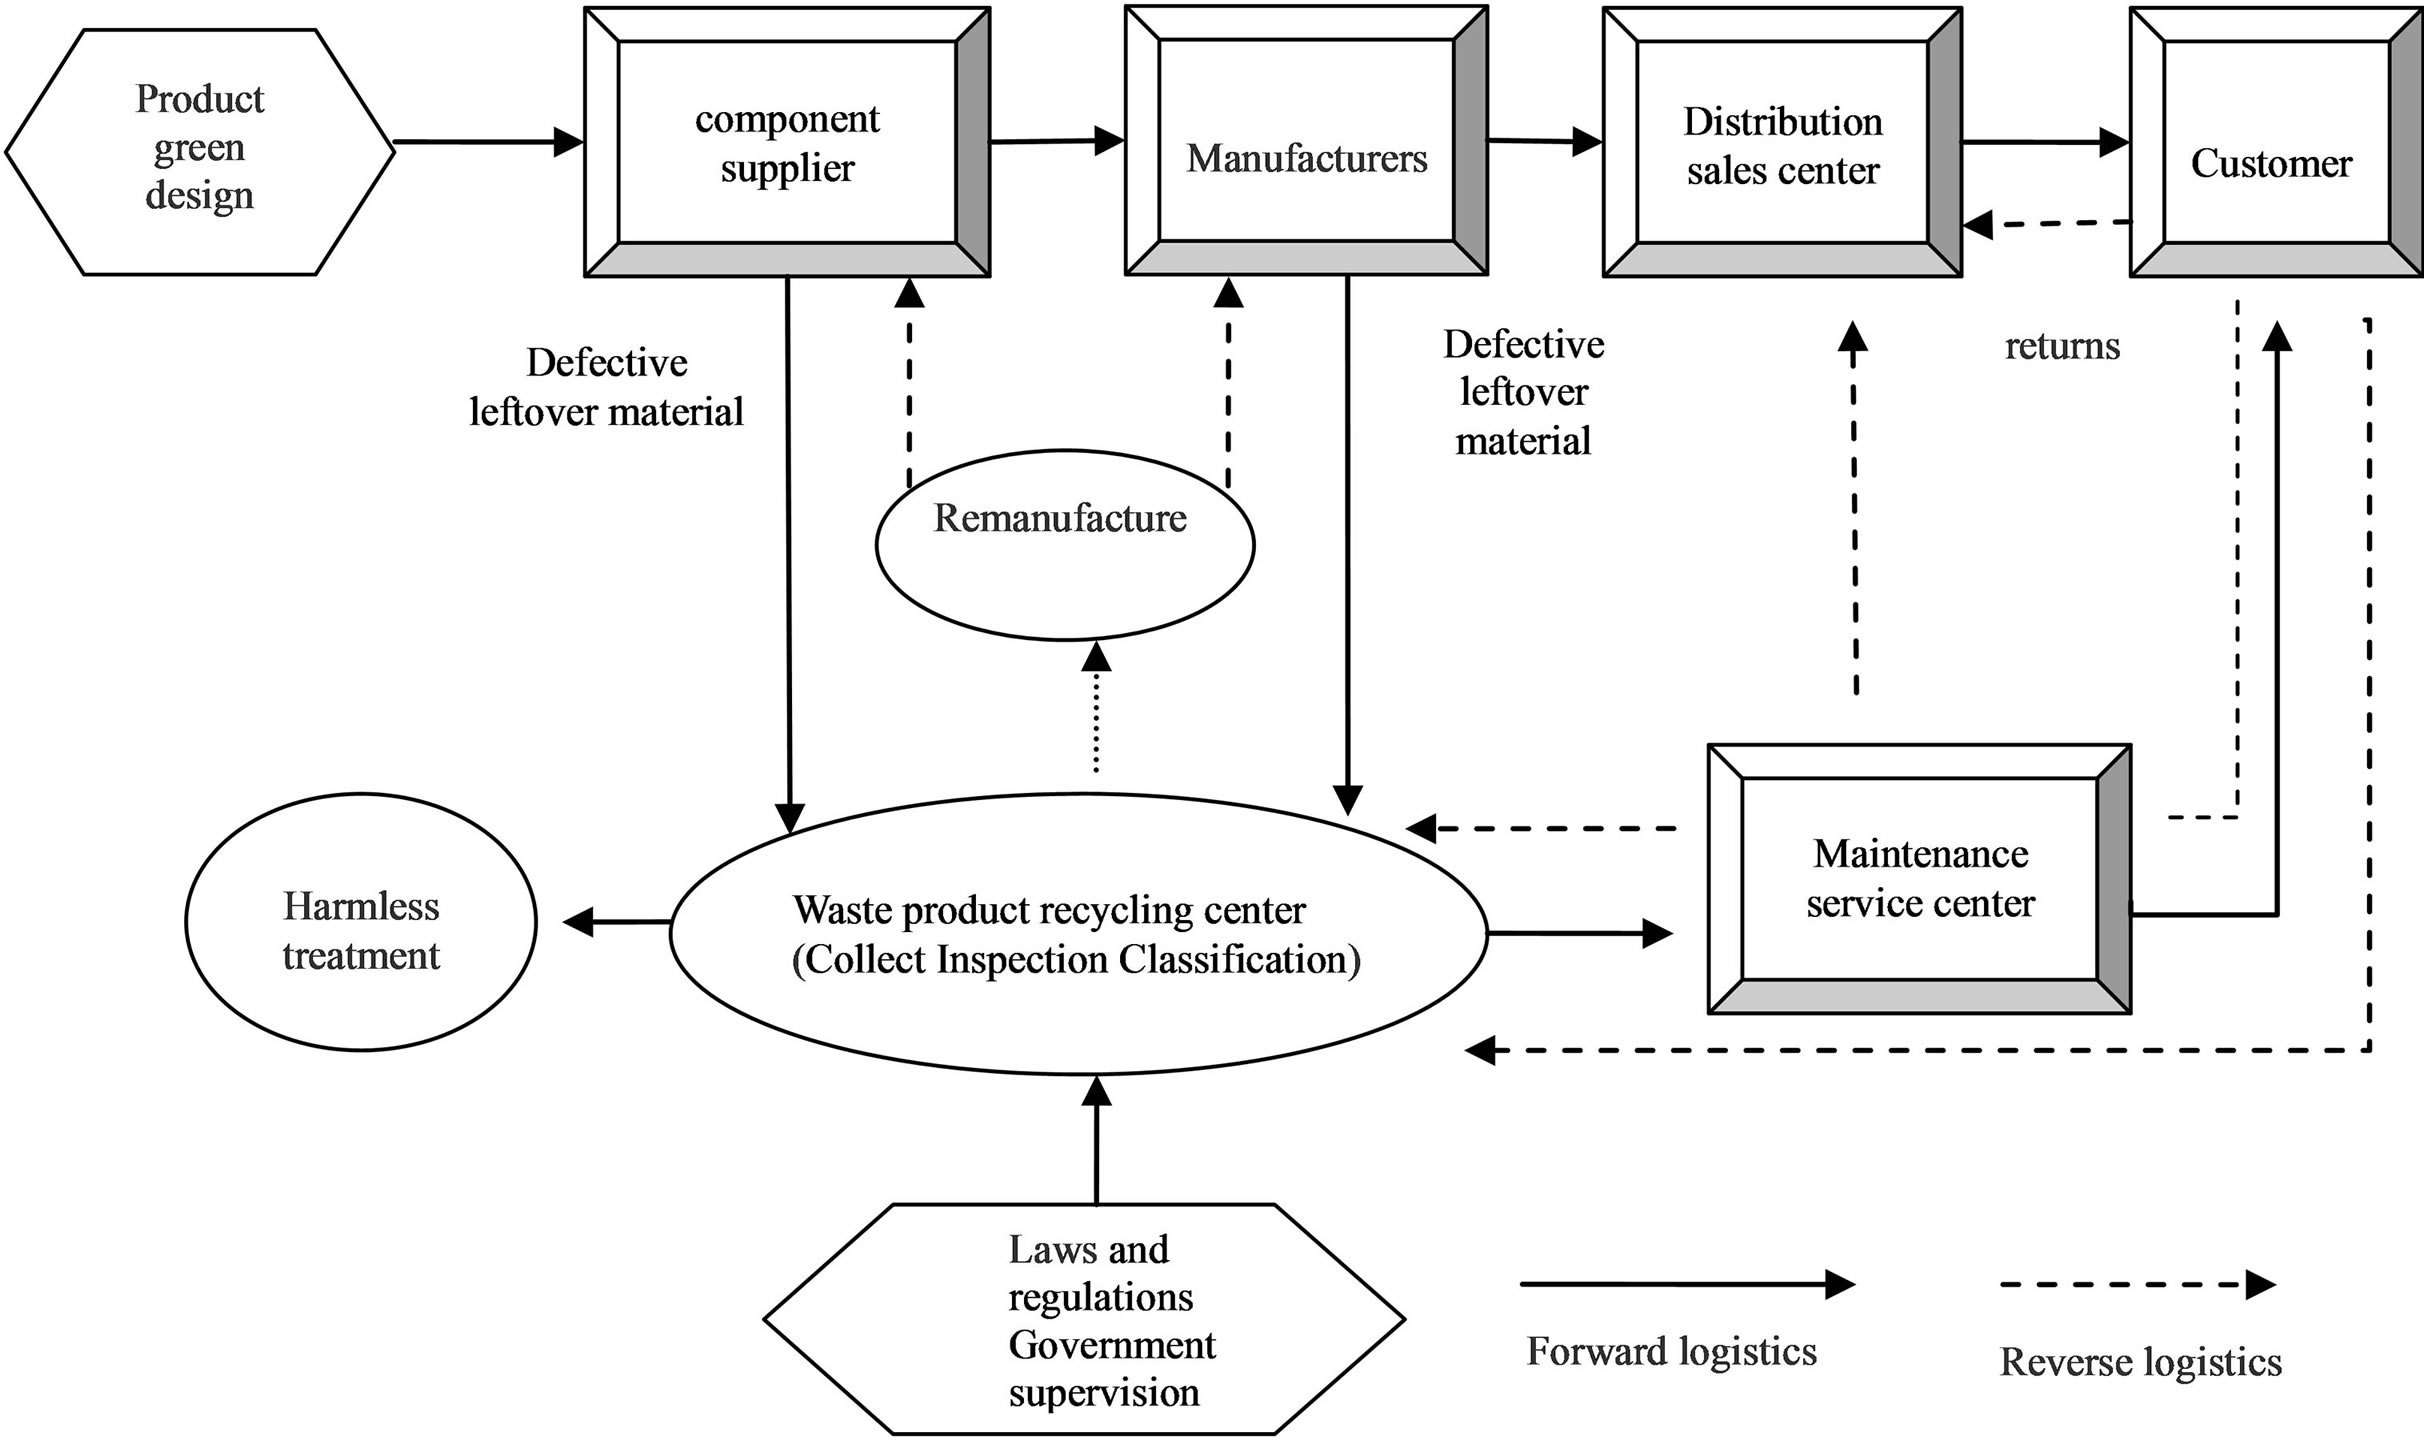 Research on Green Degree Evaluation of Manufacturing